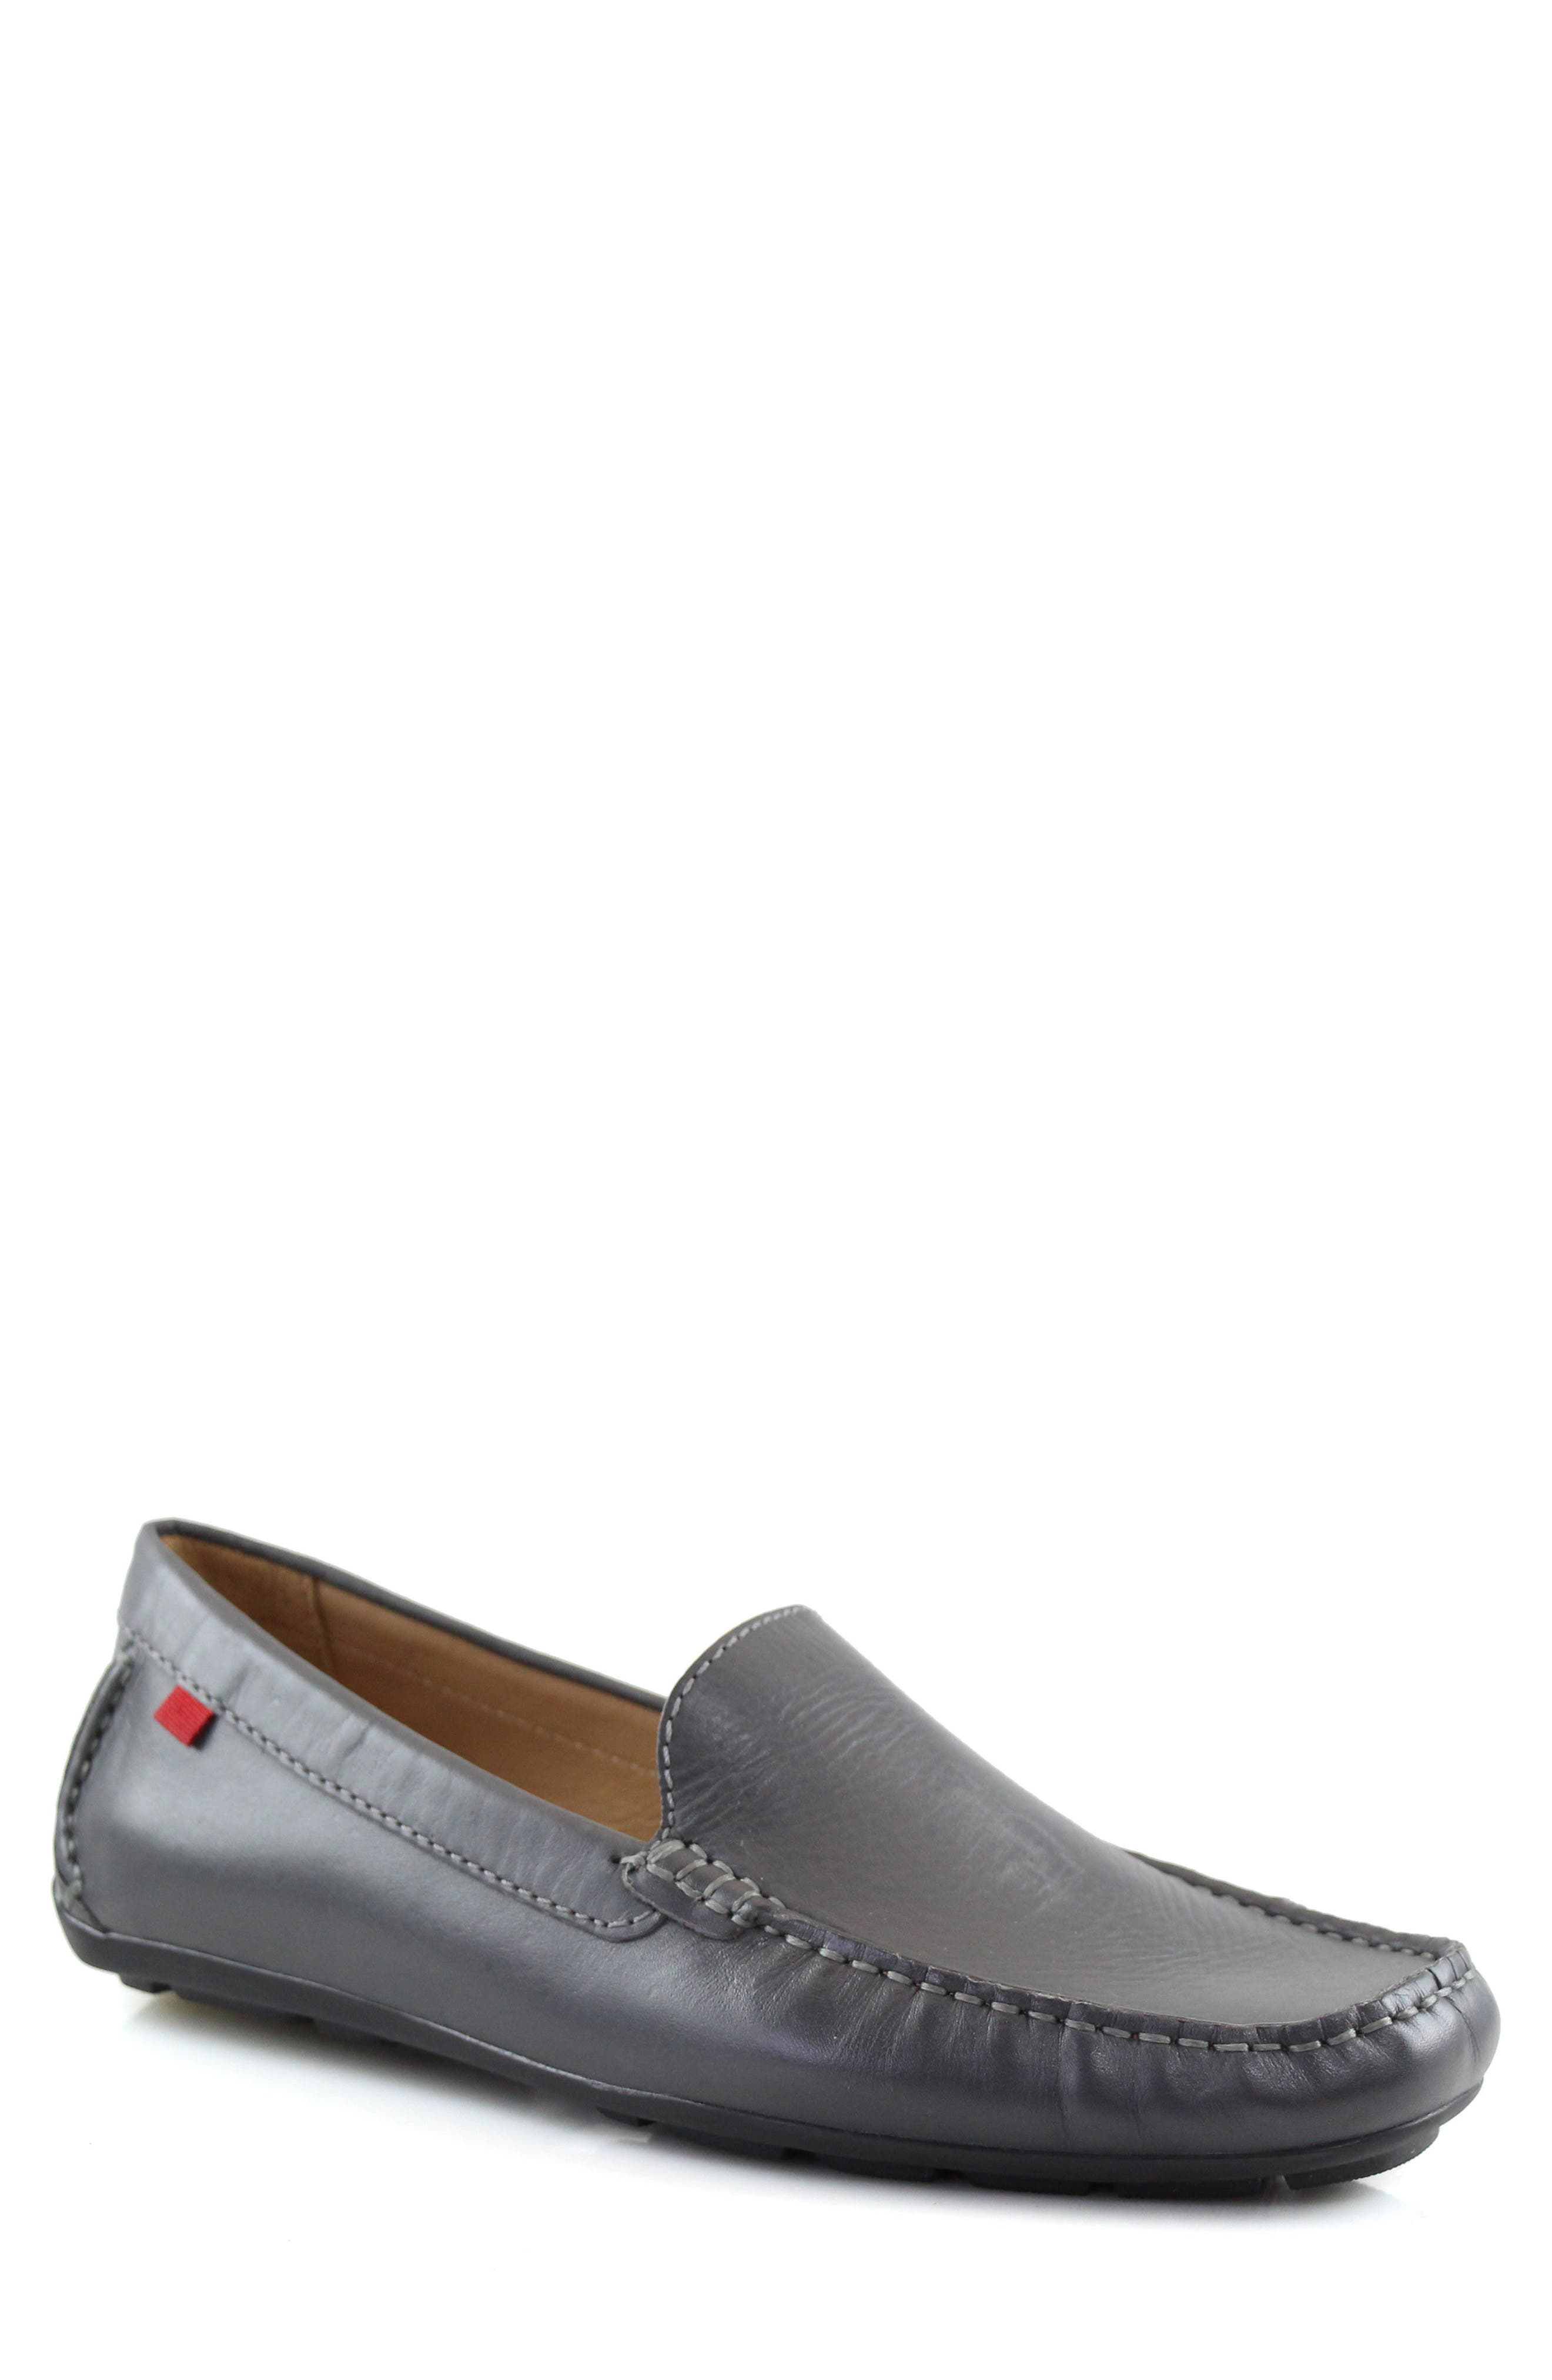 Marc Joseph New York Venetian Driving Loafer (Men)